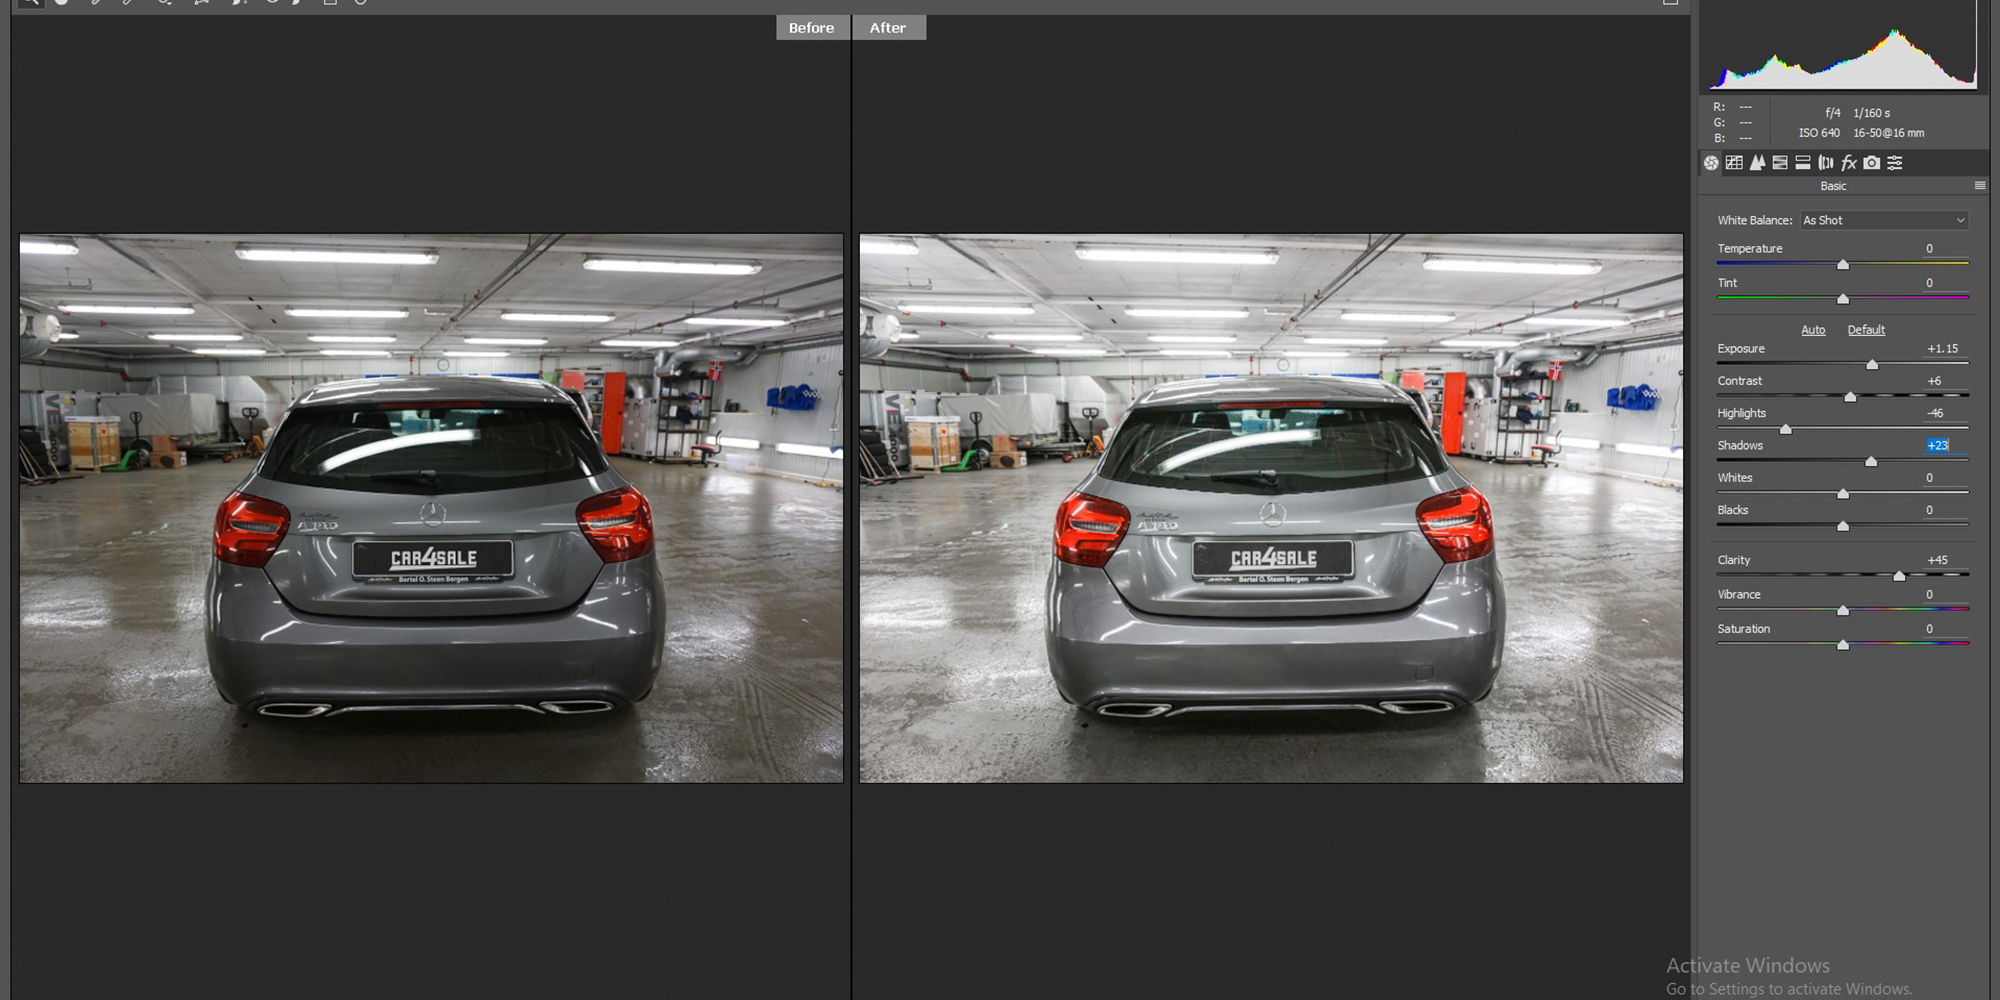 Car image editing color correction sample